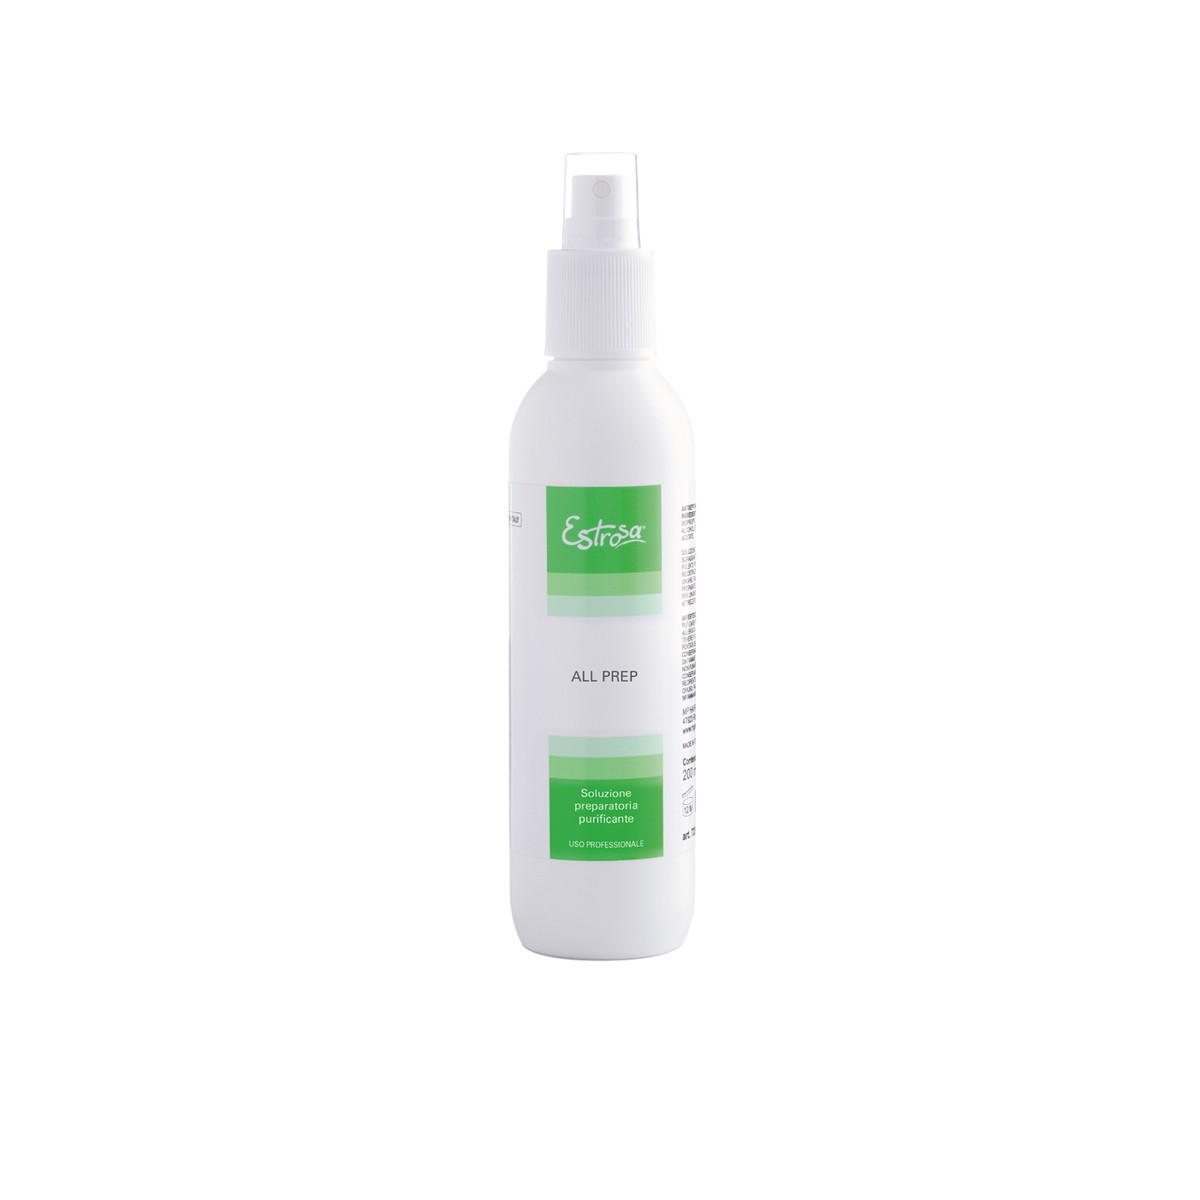 ALL PREP SOLUZIONE PREPARATORIA DA 200 ML